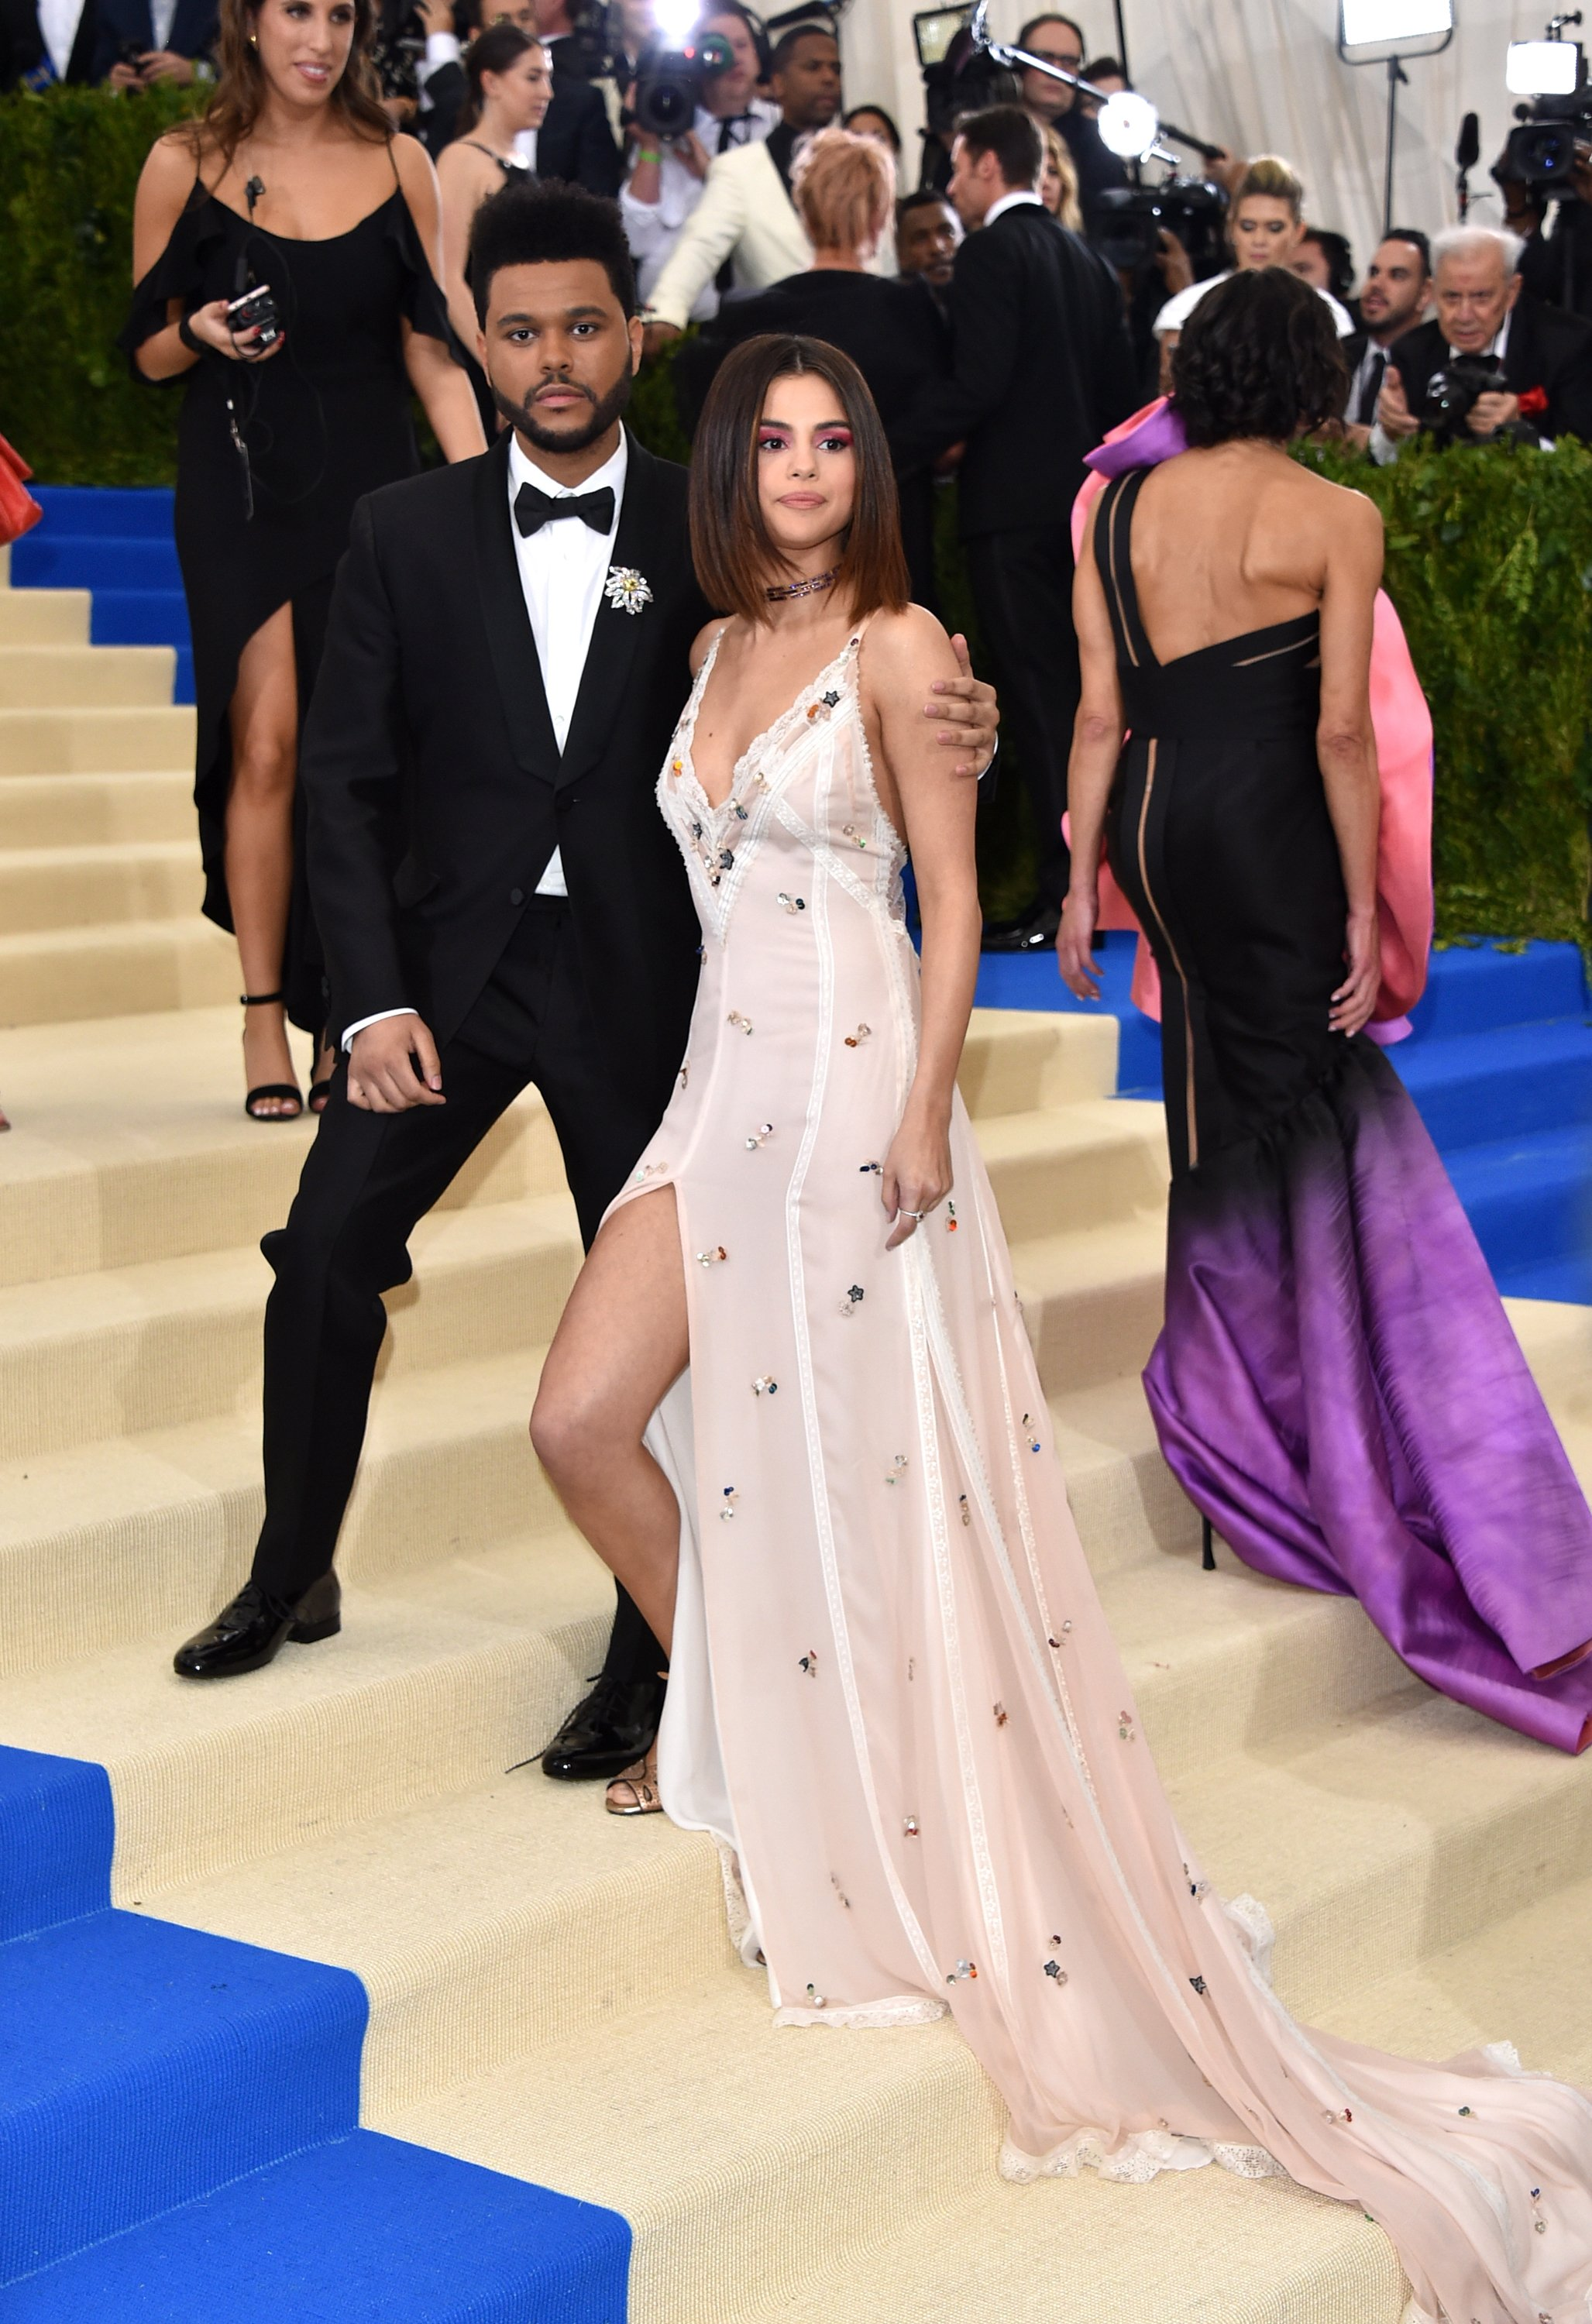 The Weeknd and Selena Gomez attend 'Rei Kawakubo/Comme des Garcons: Art Of The In-Between' Costume Institute Gala at Metropolitan Museum of Art on May 1, 2017 in New York City.